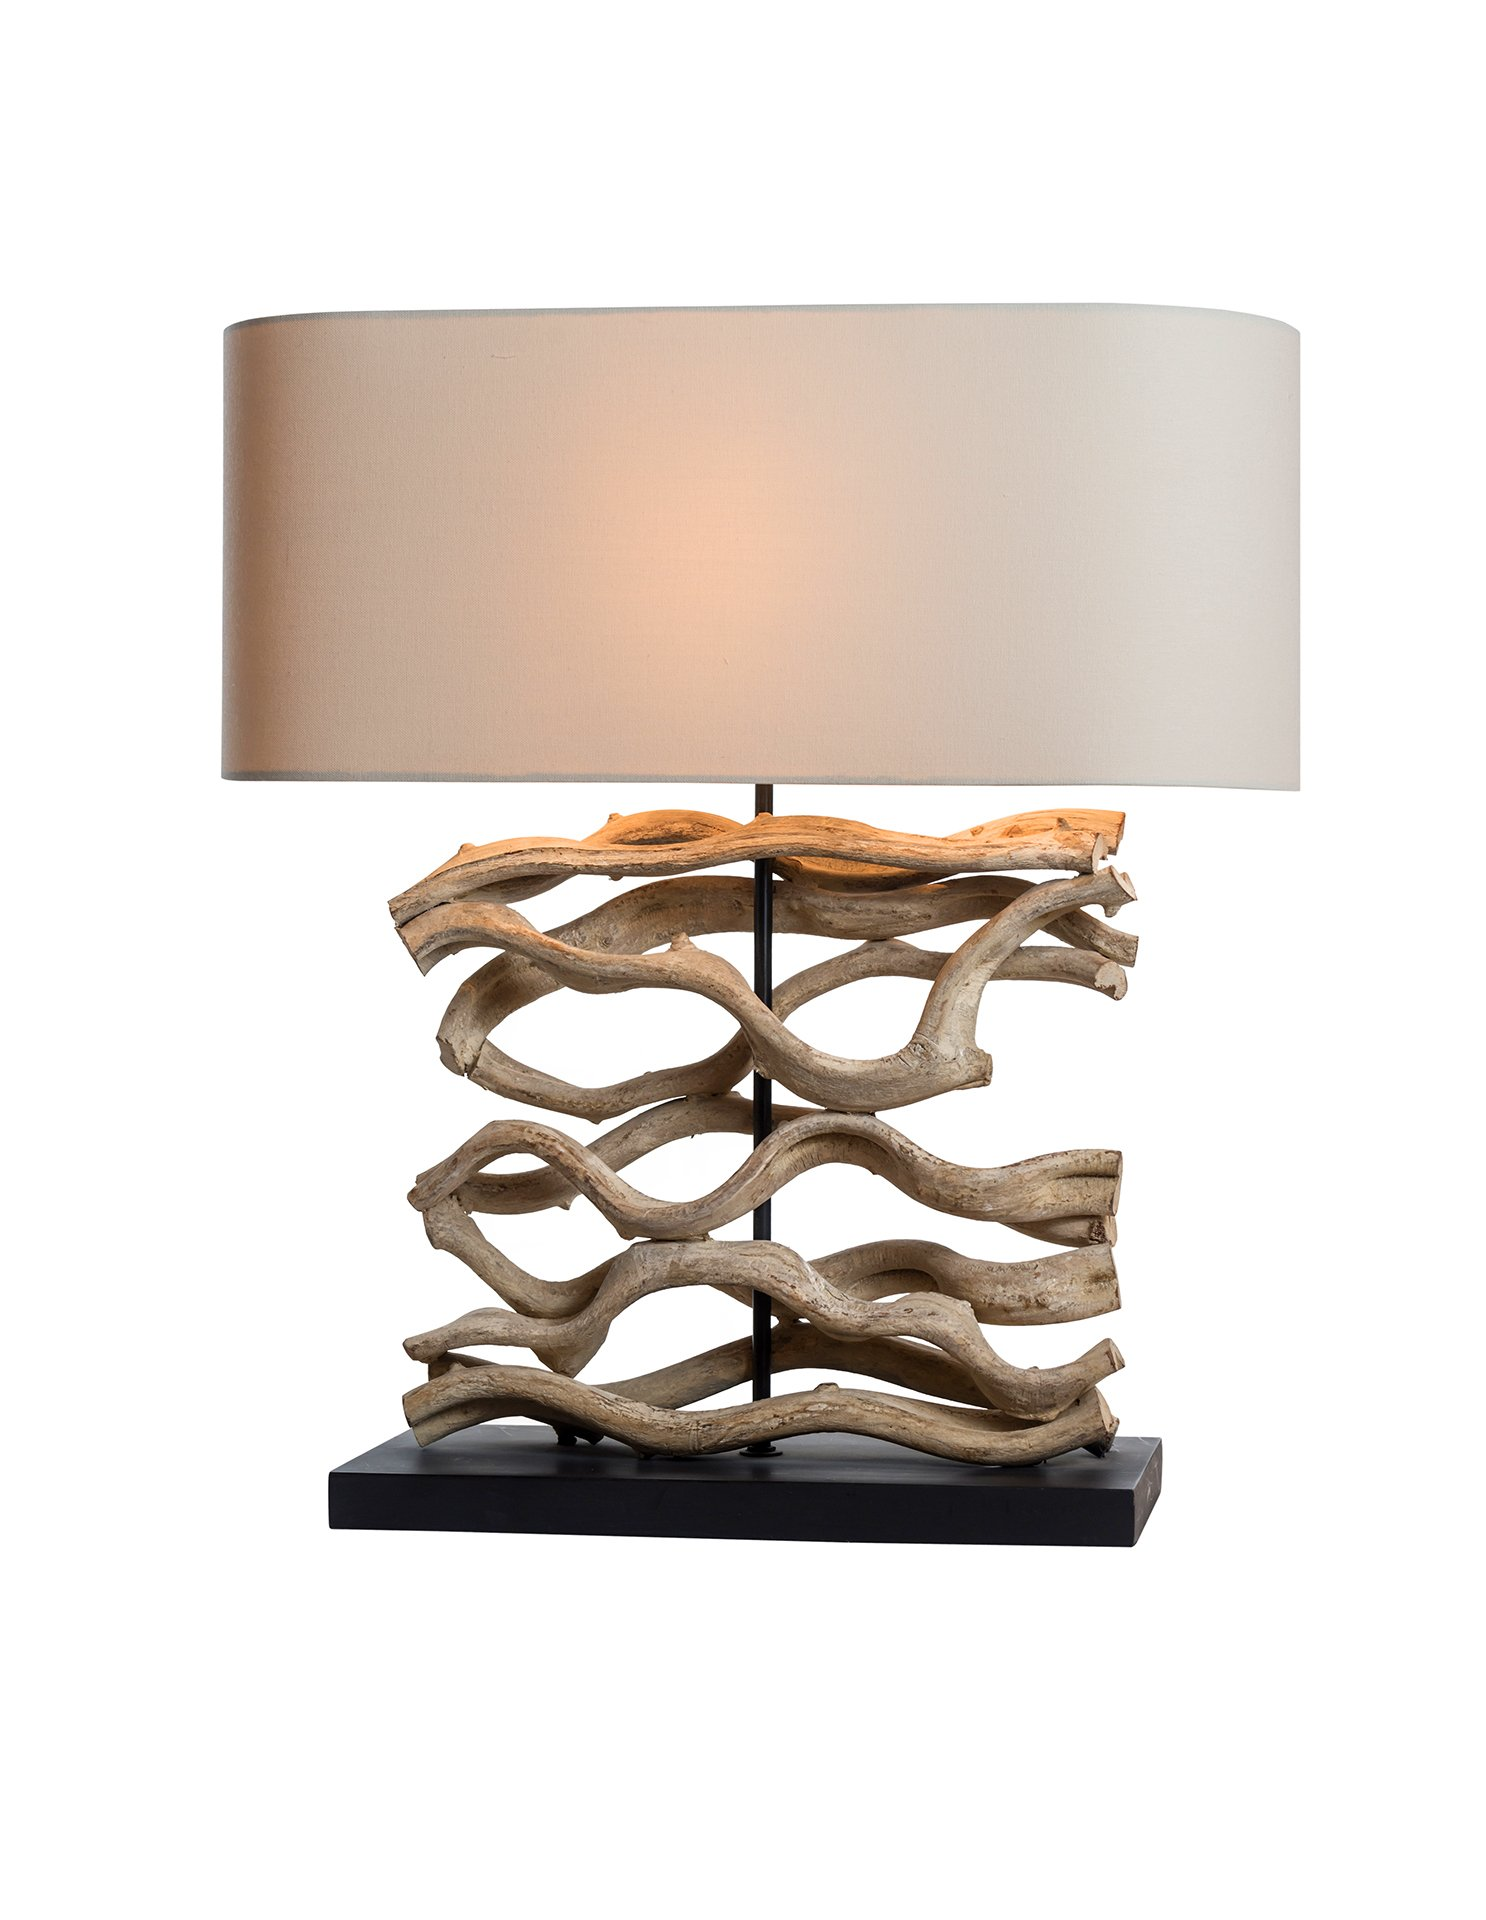 O'THENTIQUE Large Driftwood Vine Table Lamp | Natural Turned Twisted Wood Console Lamp with Linen Shade Design for Beach House Cabin Cottage Bedroom Living Room